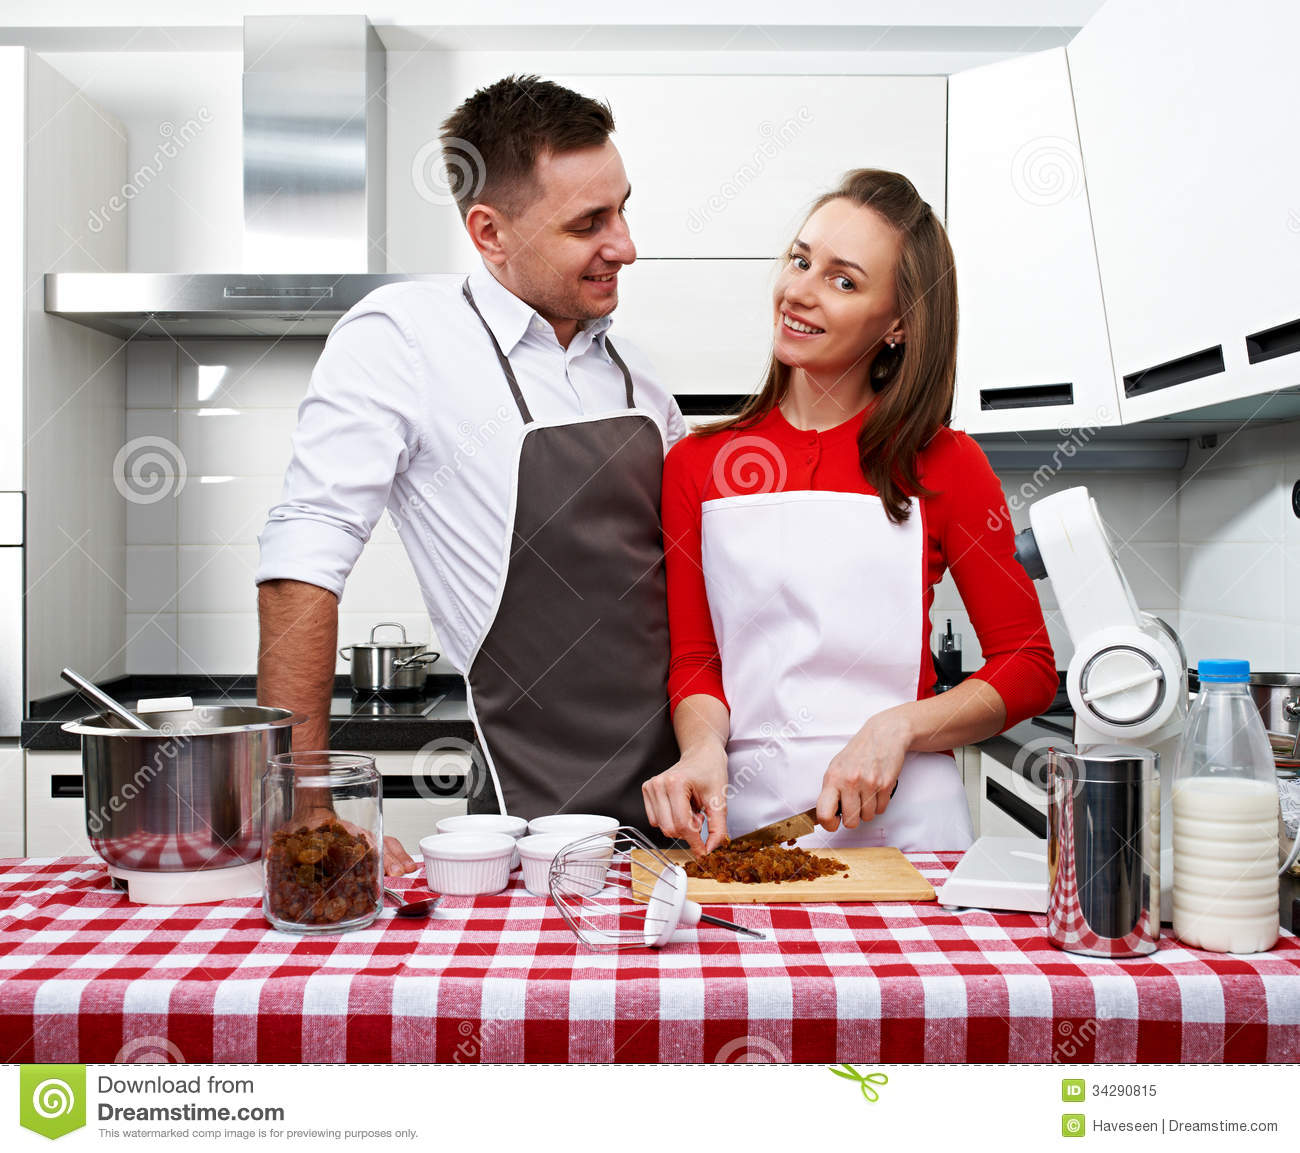 Couple at kitchen royalty free stock photo image 34290815 for Xnxx in the kitchen